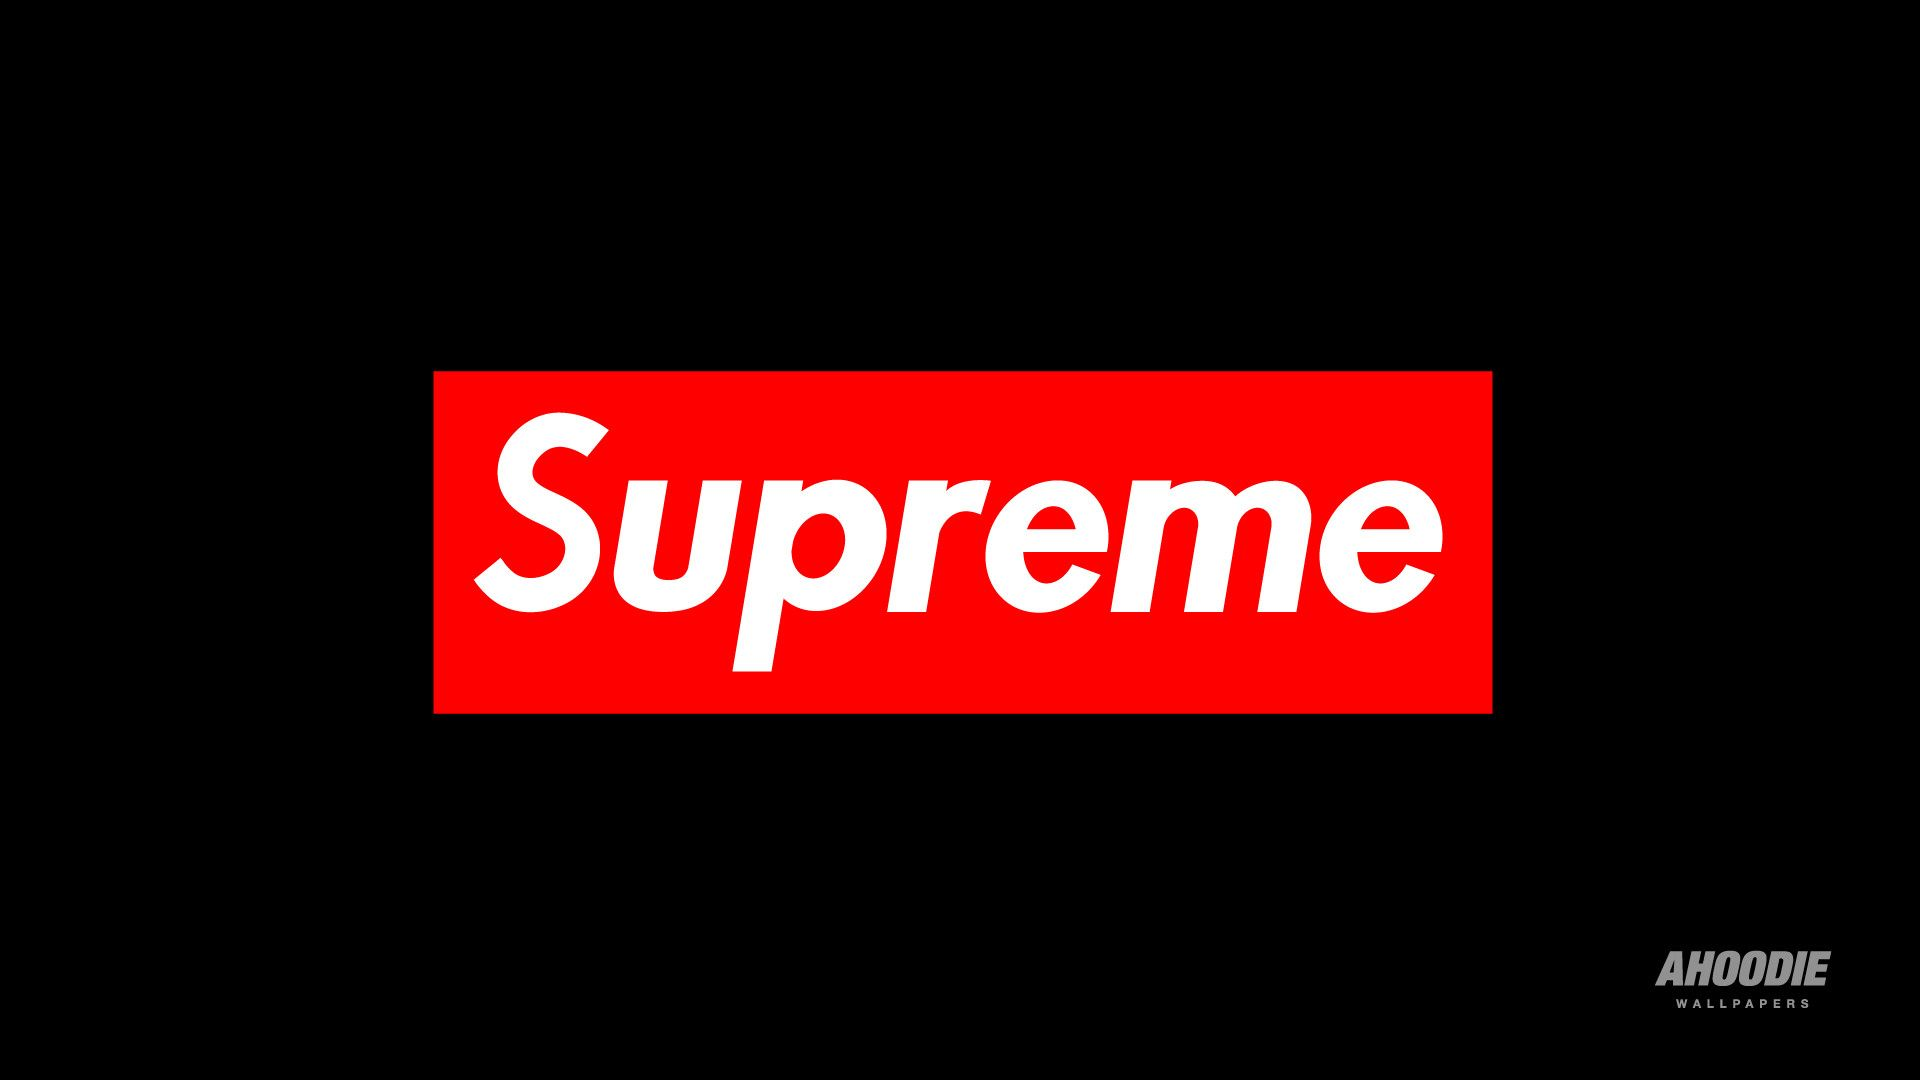 Supreme Dope Pc Wallpapers Top Free Supreme Dope Pc Backgrounds Wallpaperaccess